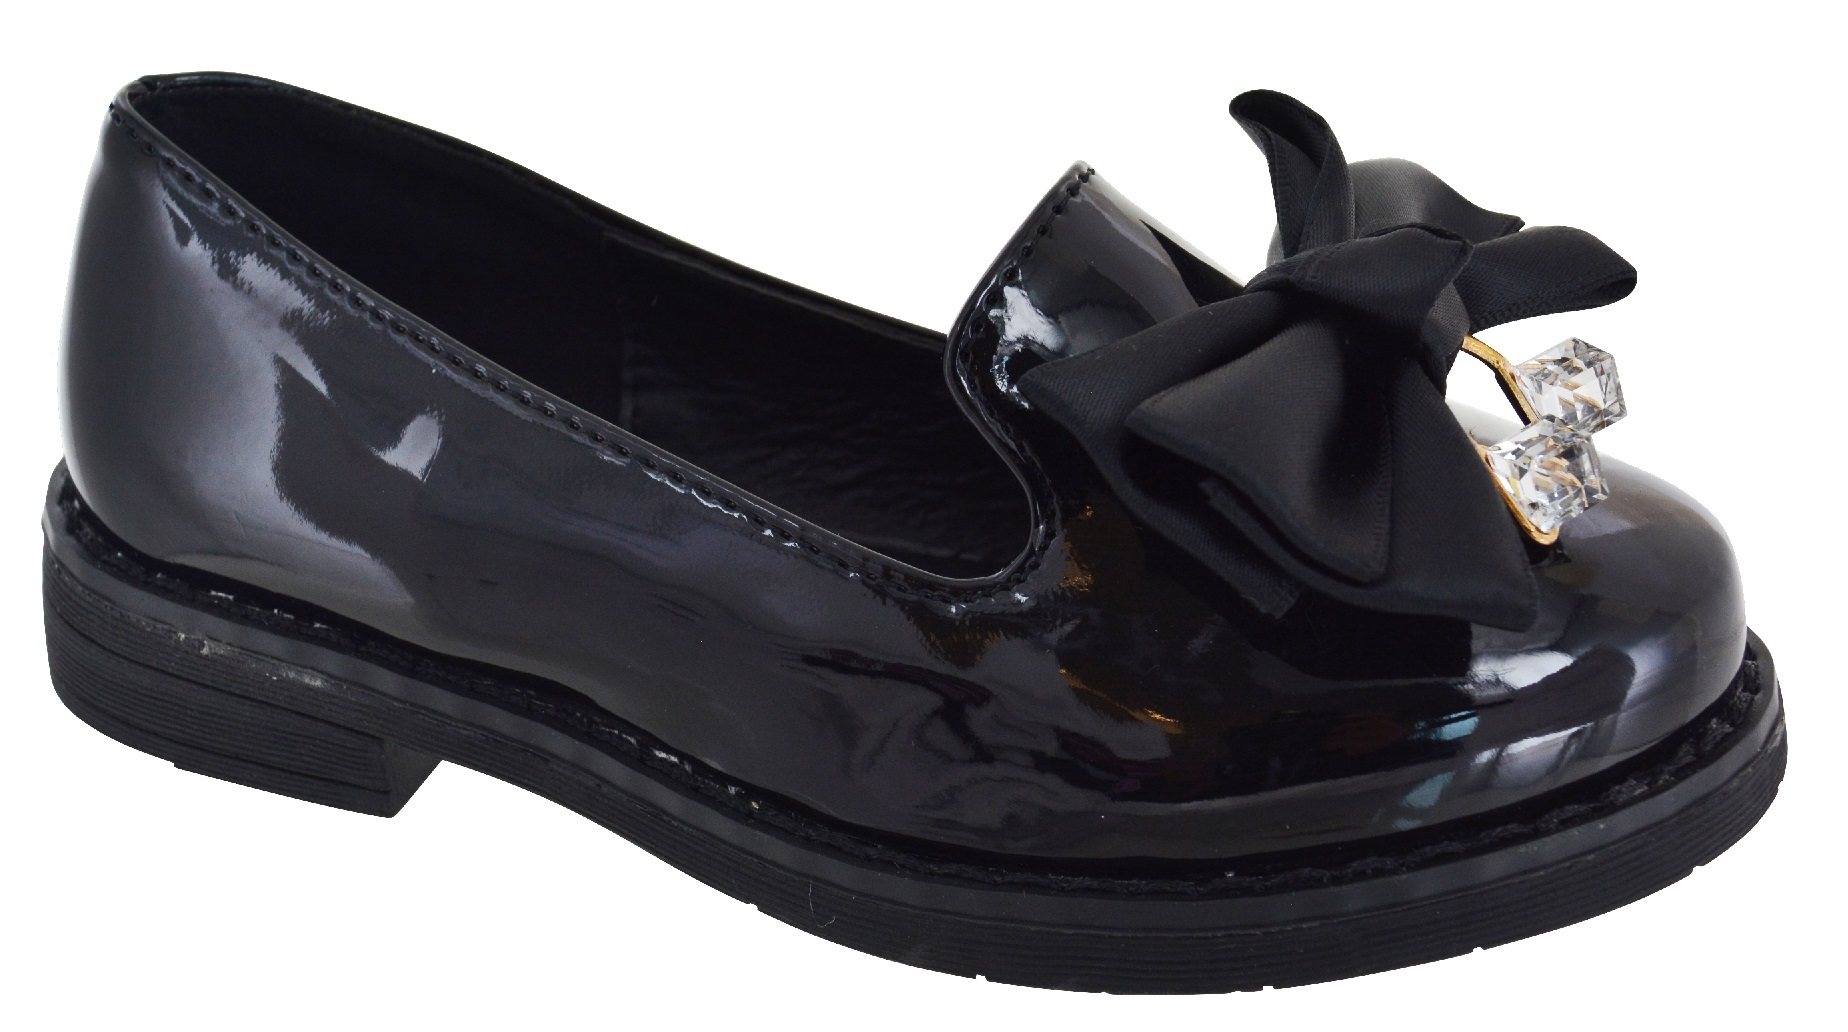 KIDS-GIRLS-CHILDREN-FLAT-BOW-LOAFERS-CREEPER-CHUNKY-DOLLY-SOLE-SCHOOL-SHOES-SIZE